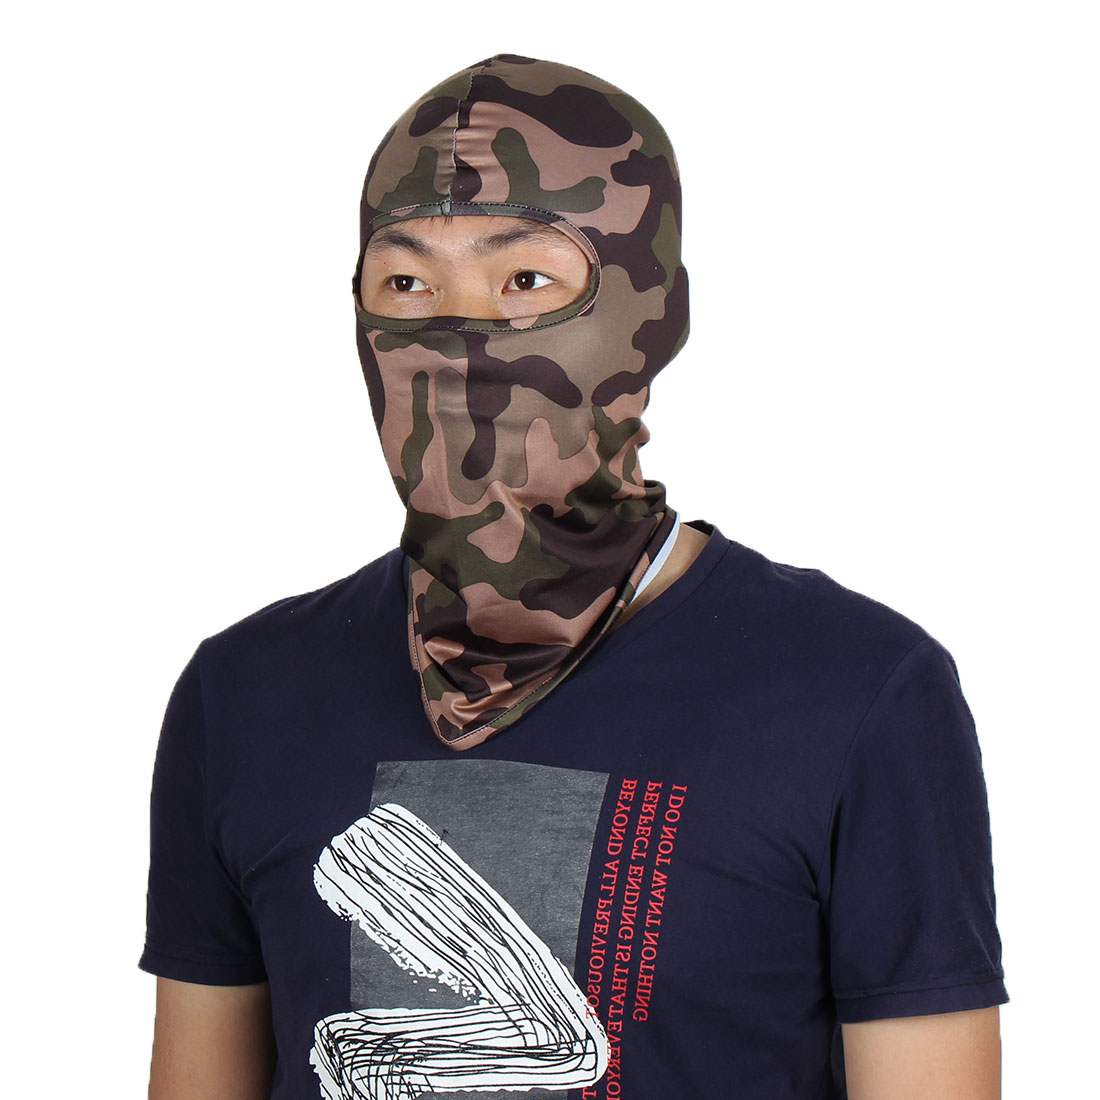 Full Coverage Face Mask Activities Neck Protector Hood Beanie Helmet Balaclava by Unique-Bargains